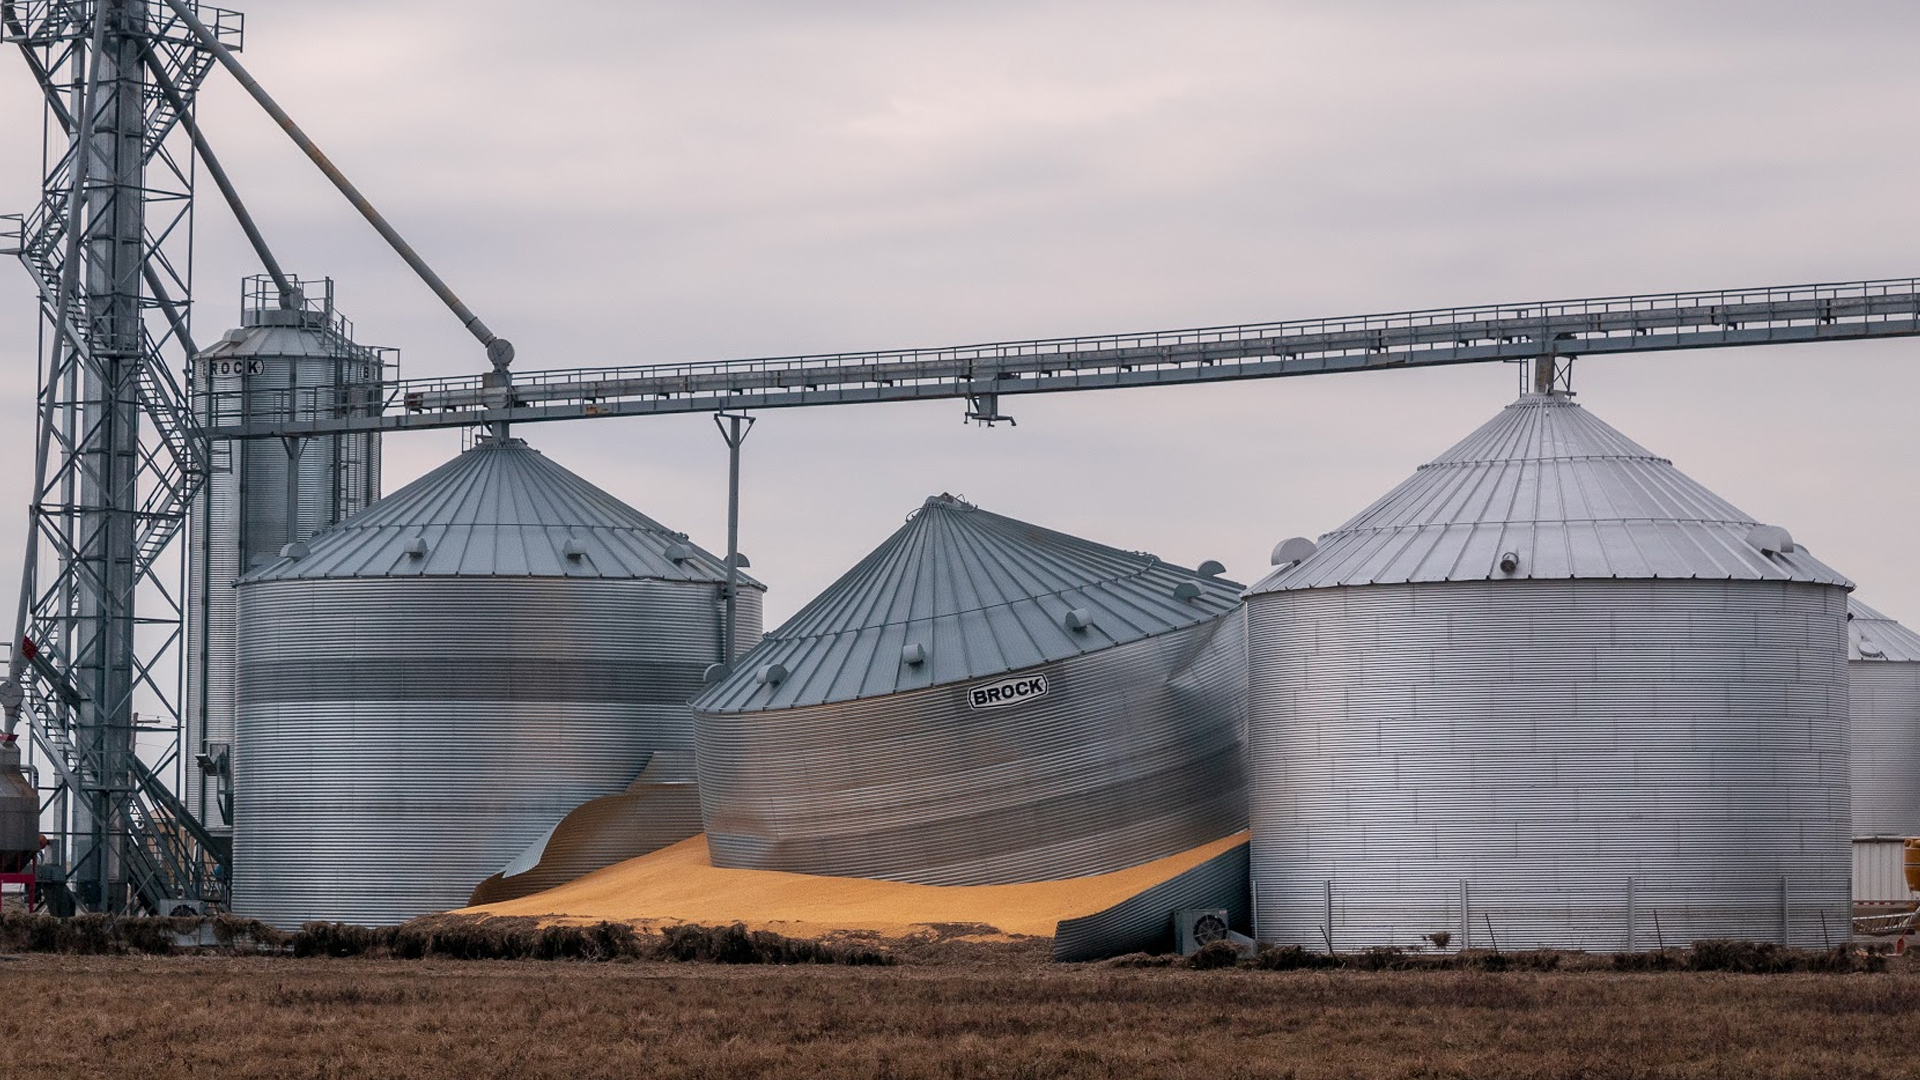 Disasters and Decisions Weigh Heavy in Farm Country